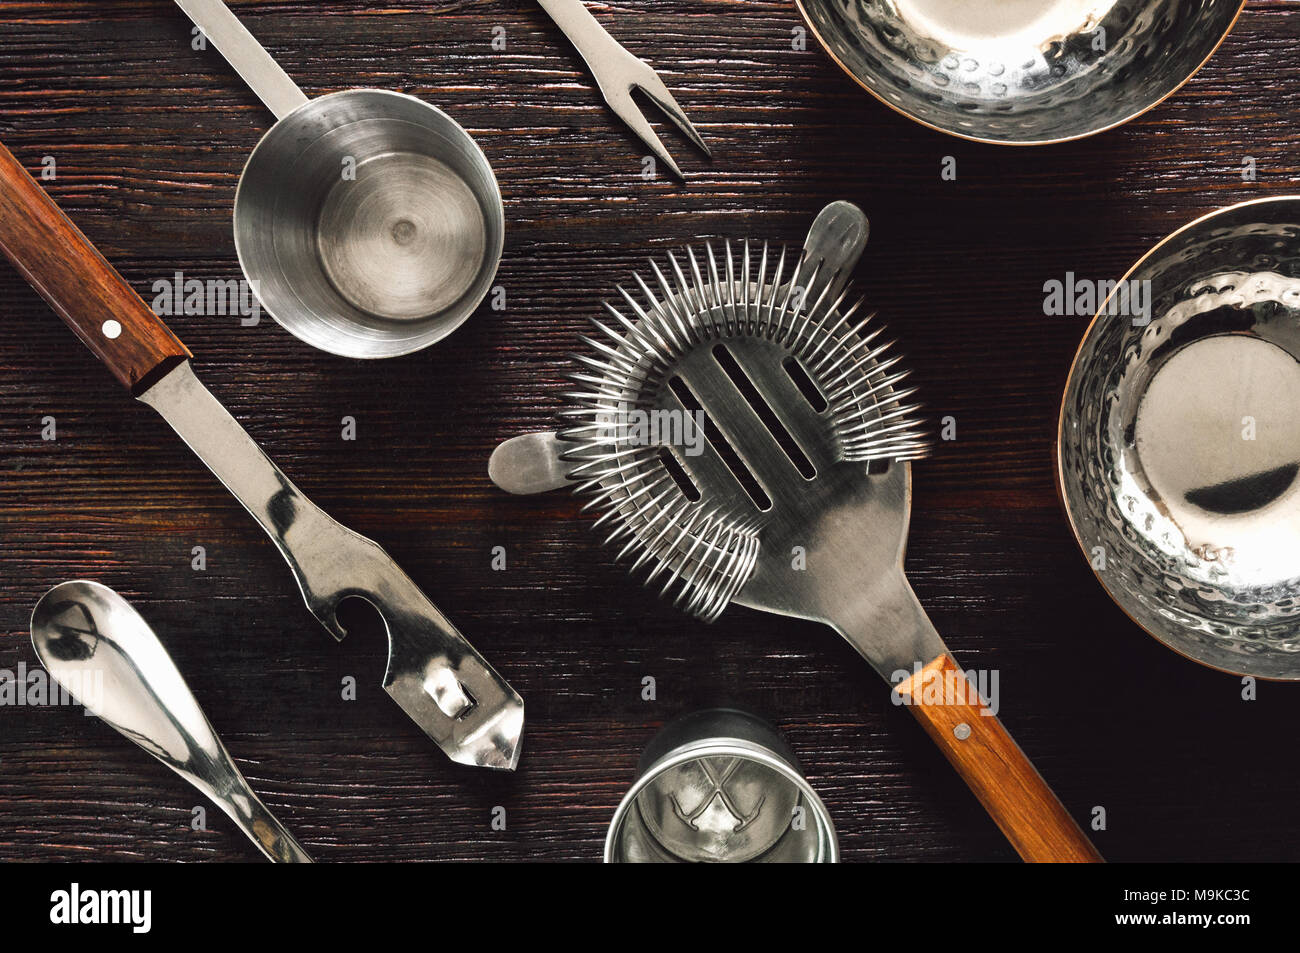 Vintage Bar Tools and Bowls Arranged on Dark Table - Stock Image